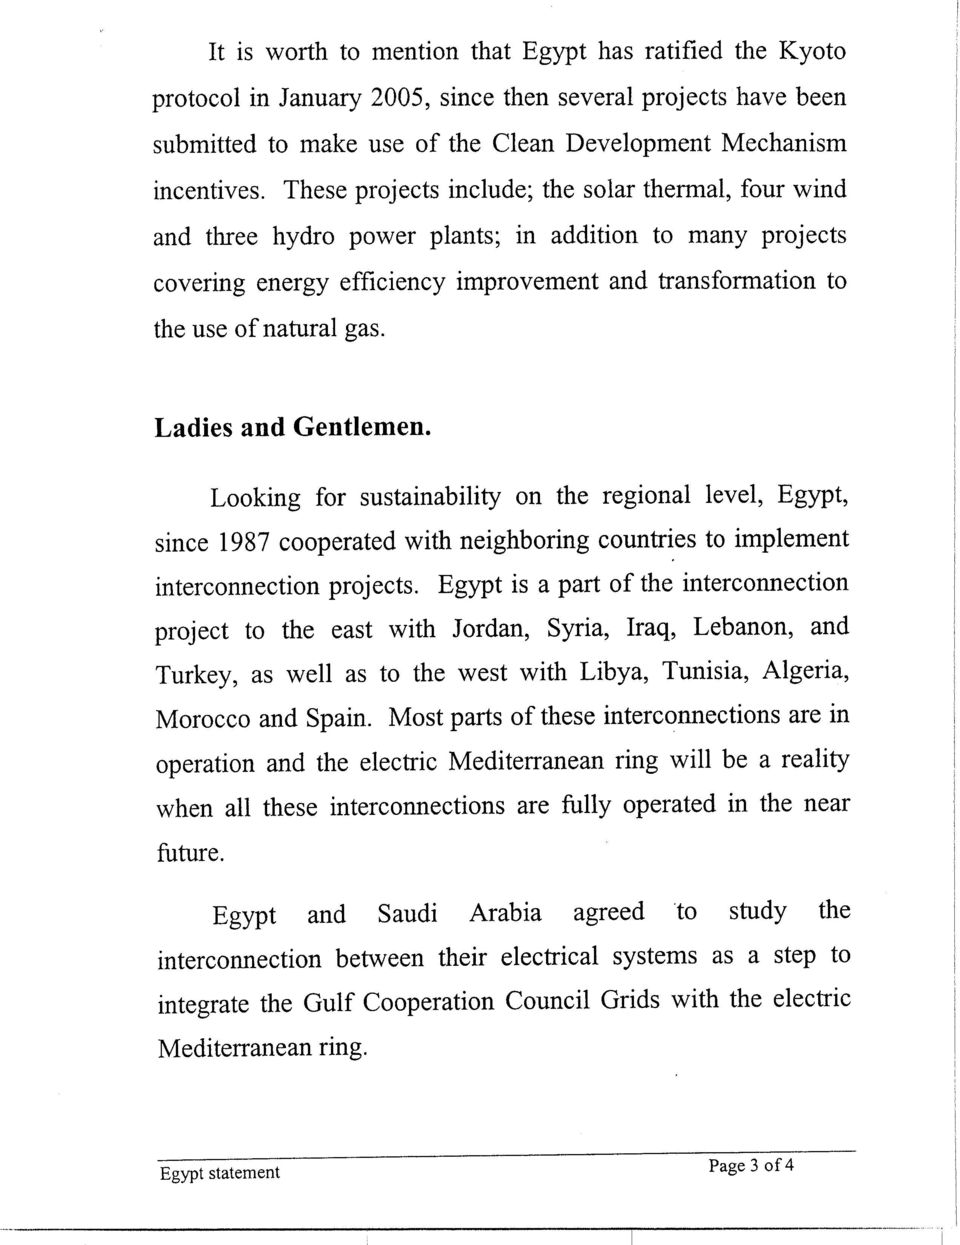 Looking for sustainability on the regional level, Egypt, since 1987 cooperated with neighboring countries to implement interconnection projects.